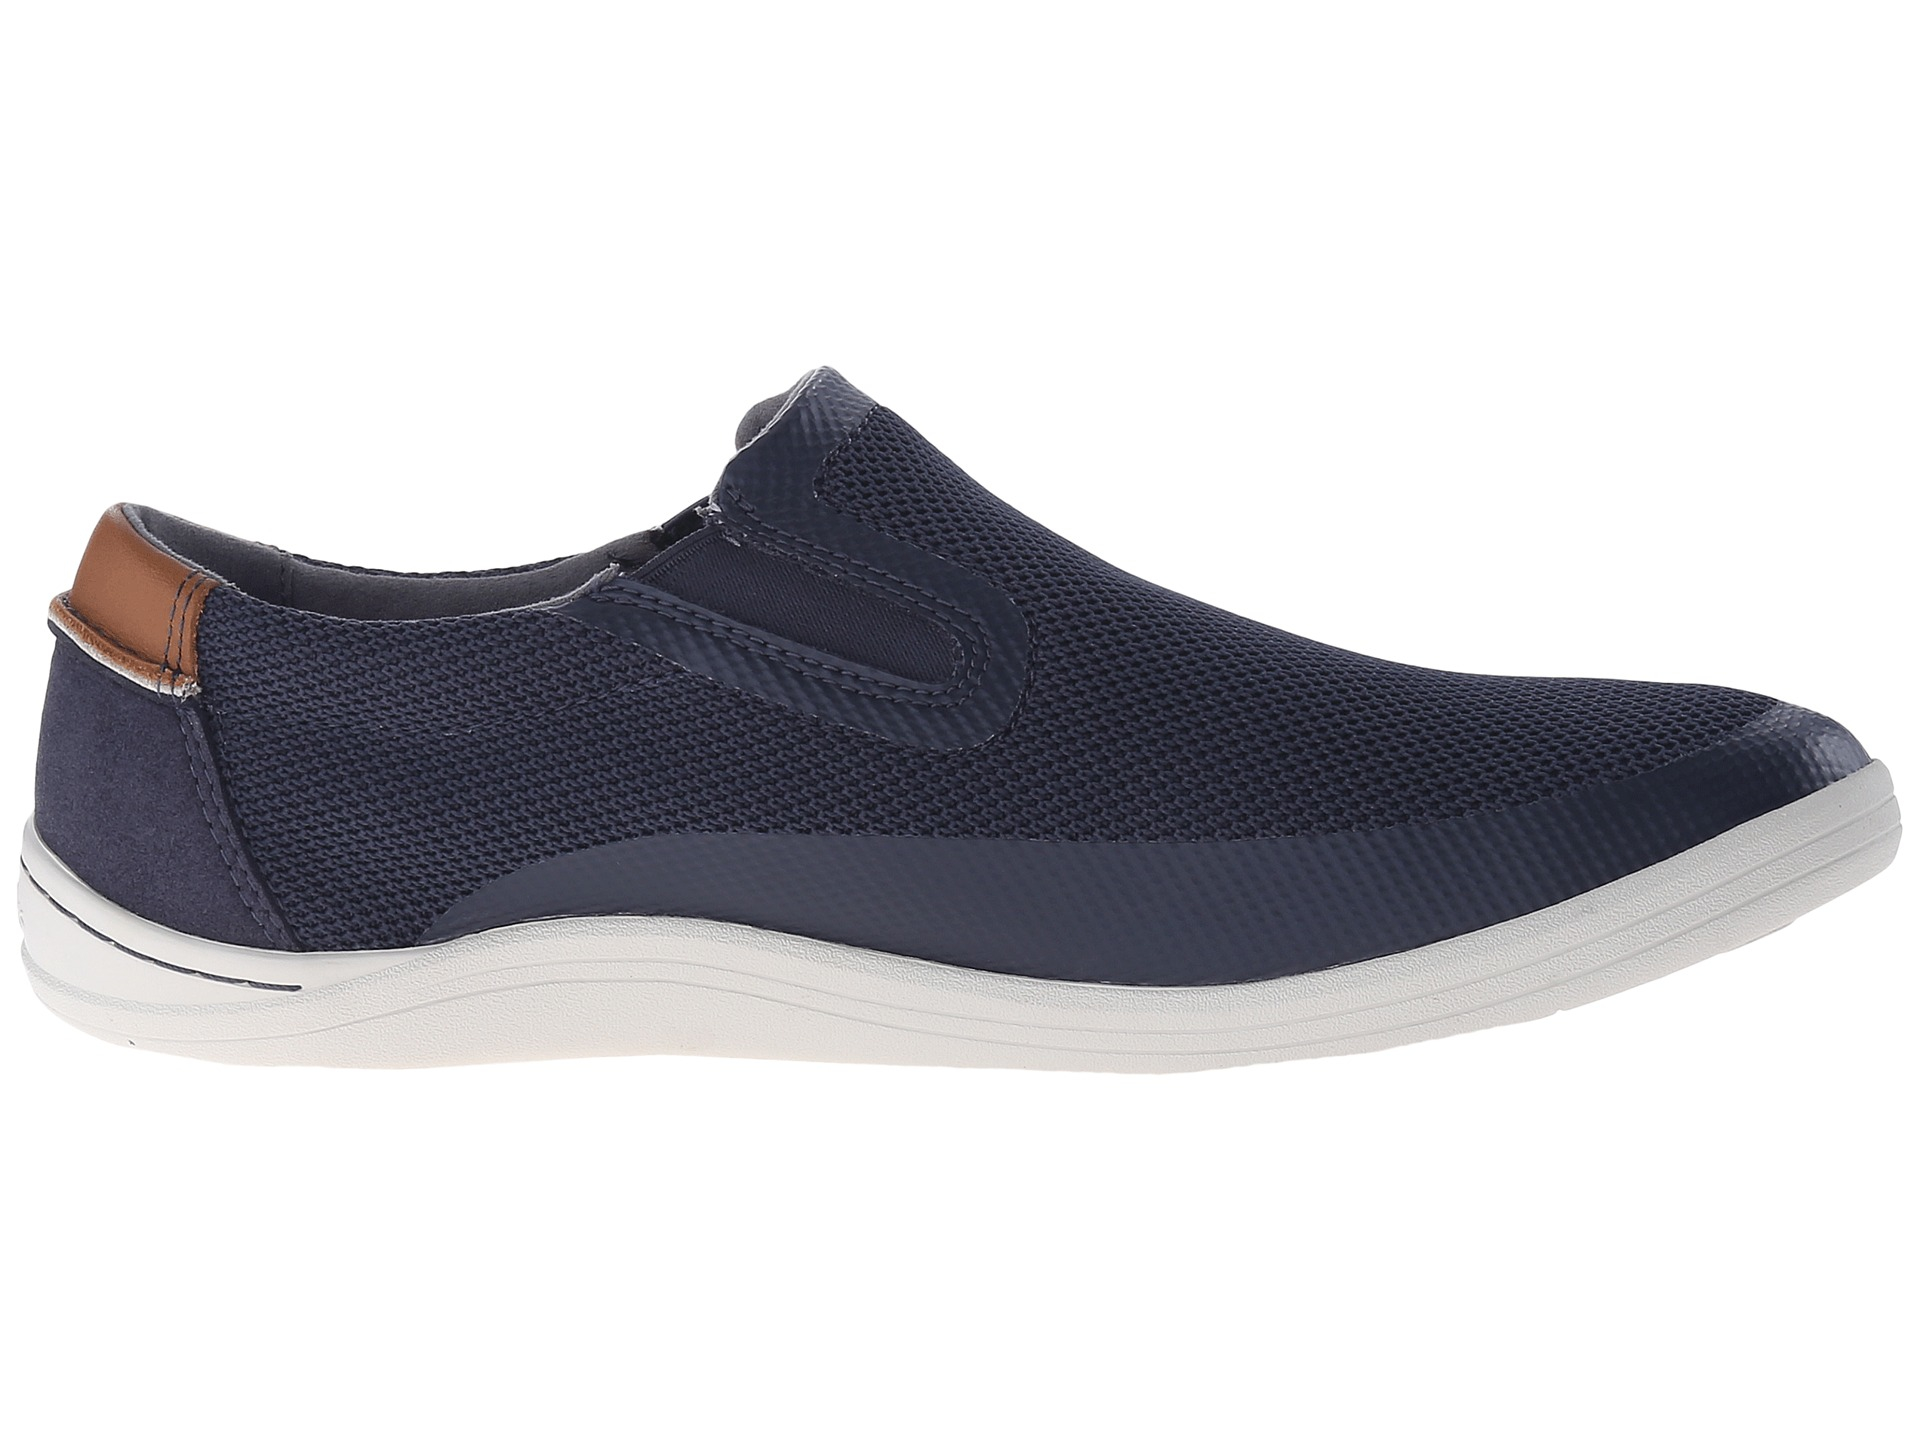 Mens Clarks Mapped Step Sneakers Blue SFP73155